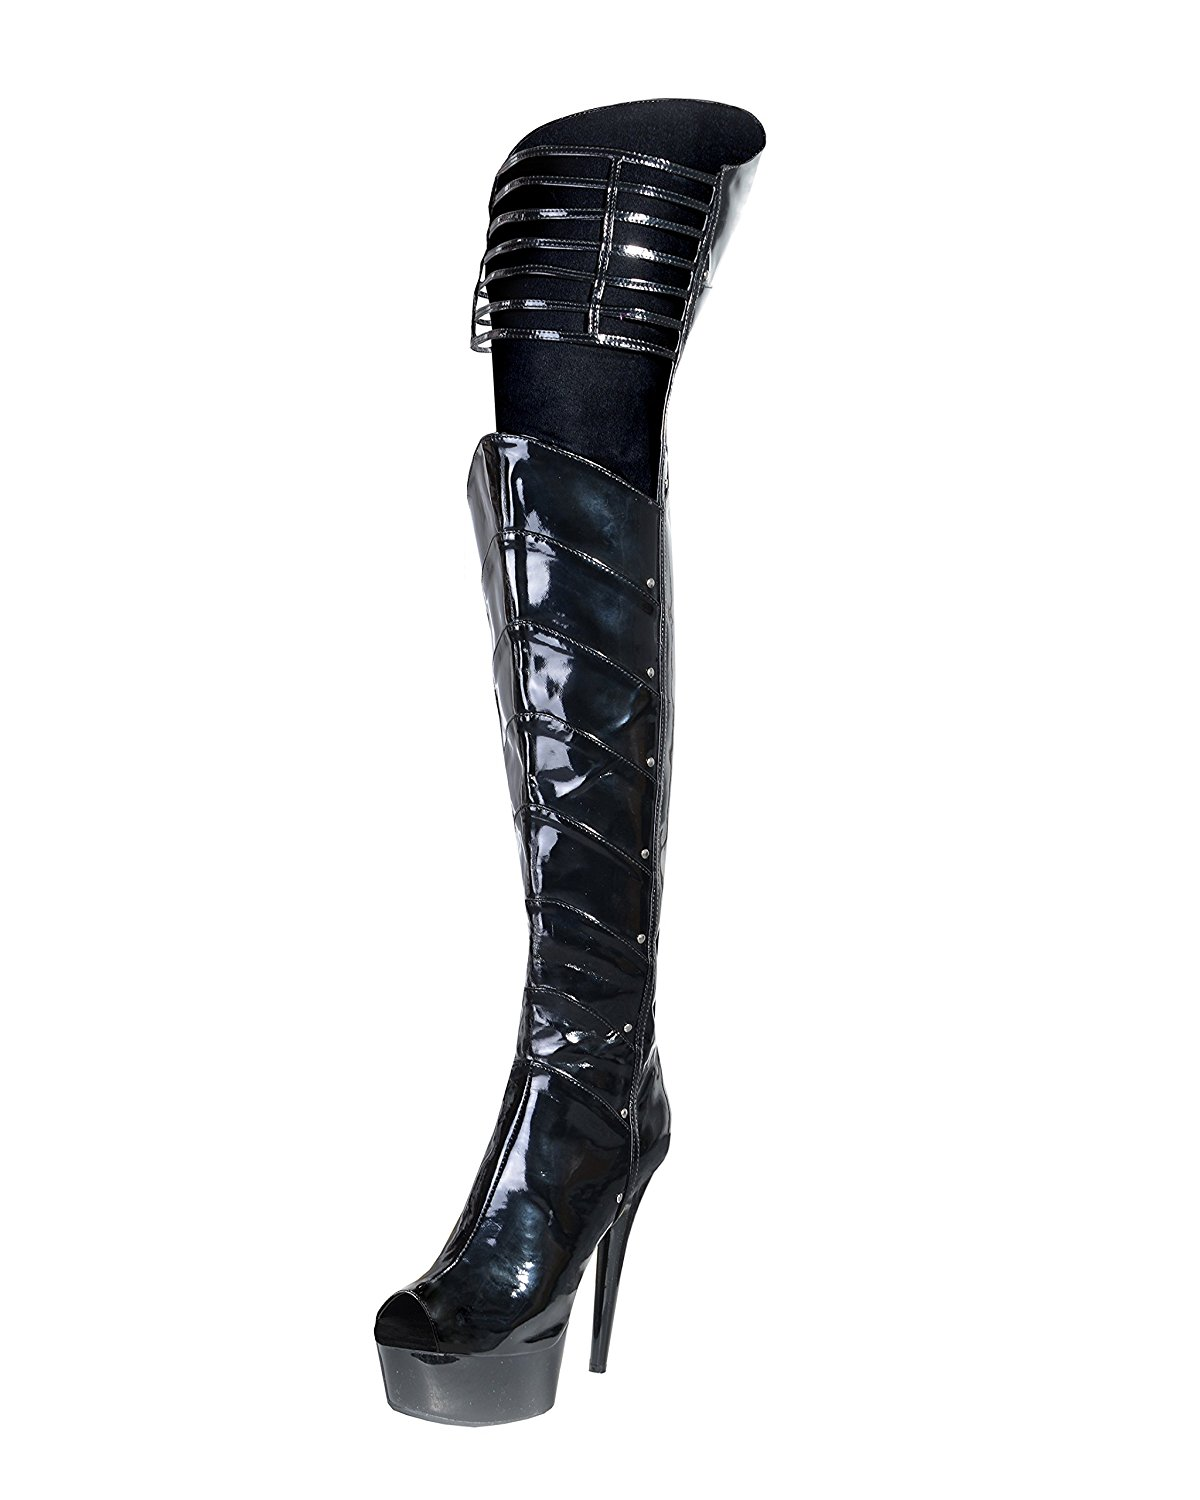 f70acaabd4a4c Get Quotations · Summitfashions 6 Inch Sexy Boots Black Thigh High Boots  Layered Panels Dominatrix Boots